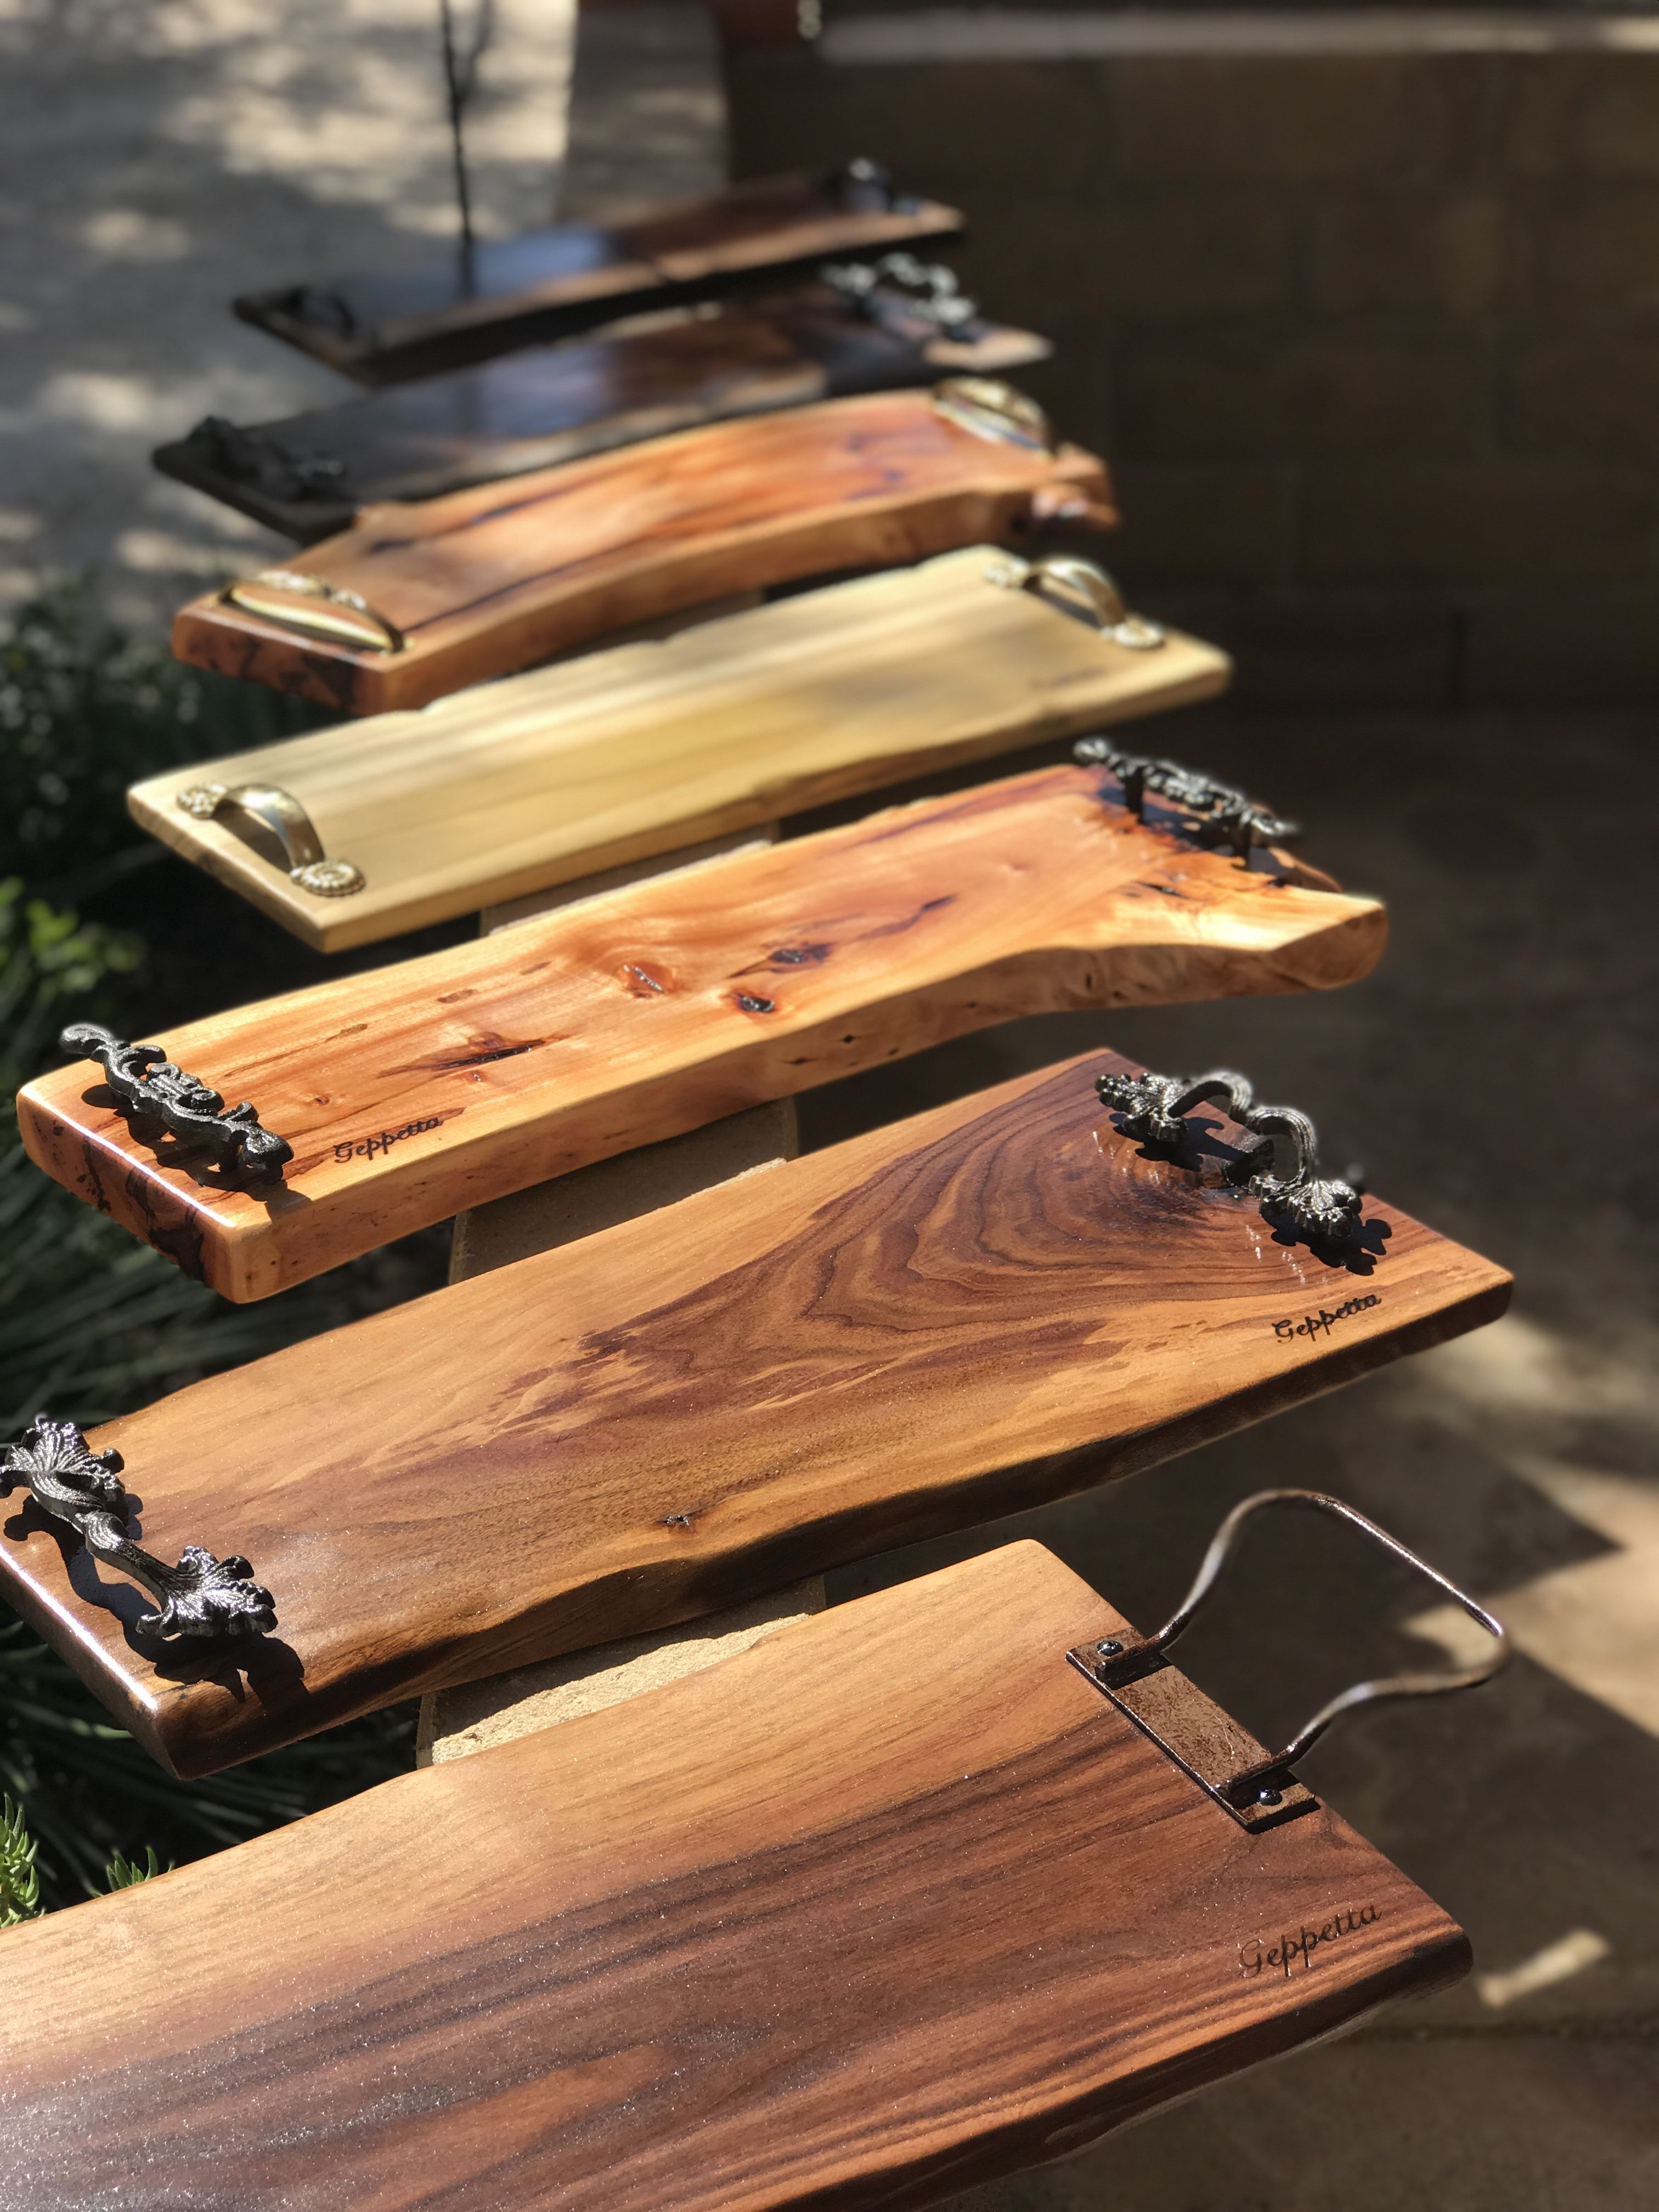 Planche De Paturage Extra Large Pin Rouge 33 X 11 In 2020 Wooden Diy Wooden Pallet Projects Handmade Wooden